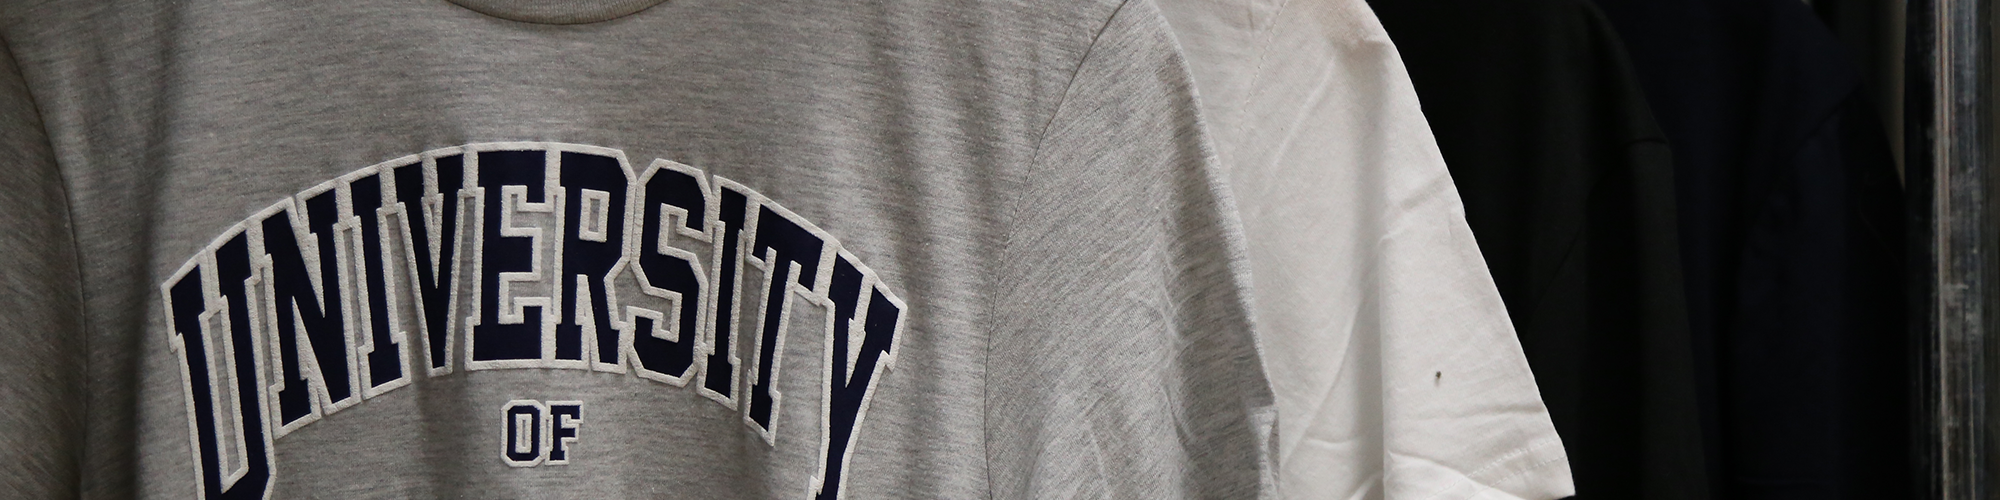 If you're looking for personalised clothing for your society then you've come to the right place. Ordering personalised University clothing is quick and easy.